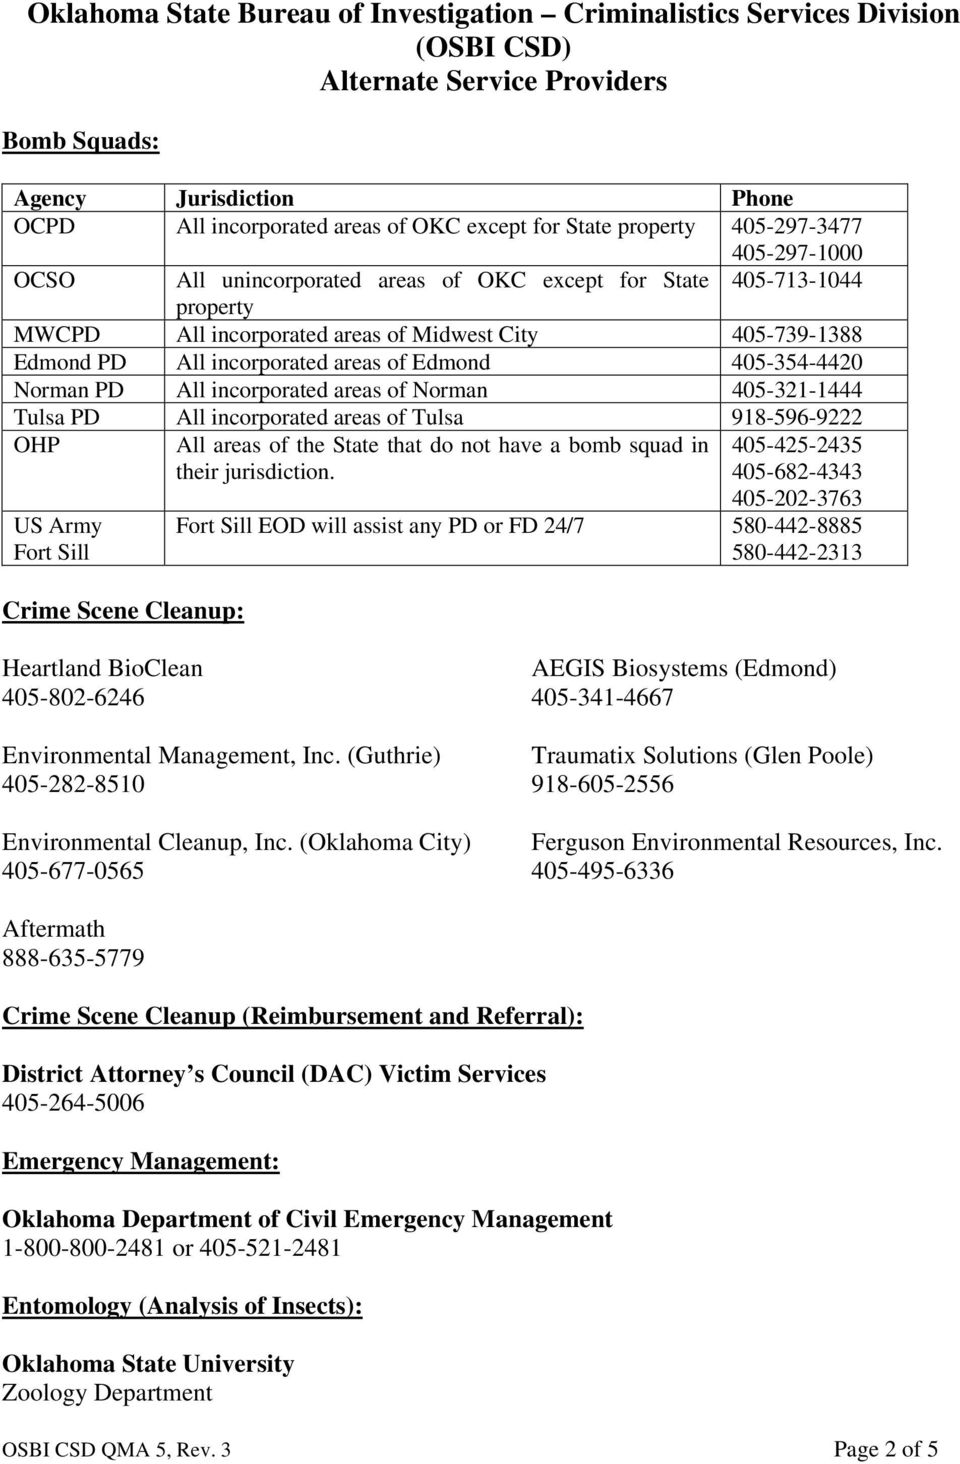 incorporated areas of Tulsa 918-596-9222 OHP US Army Fort Sill Crime Scene Cleanup: All areas of the State that do not have a bomb squad in their jurisdiction.